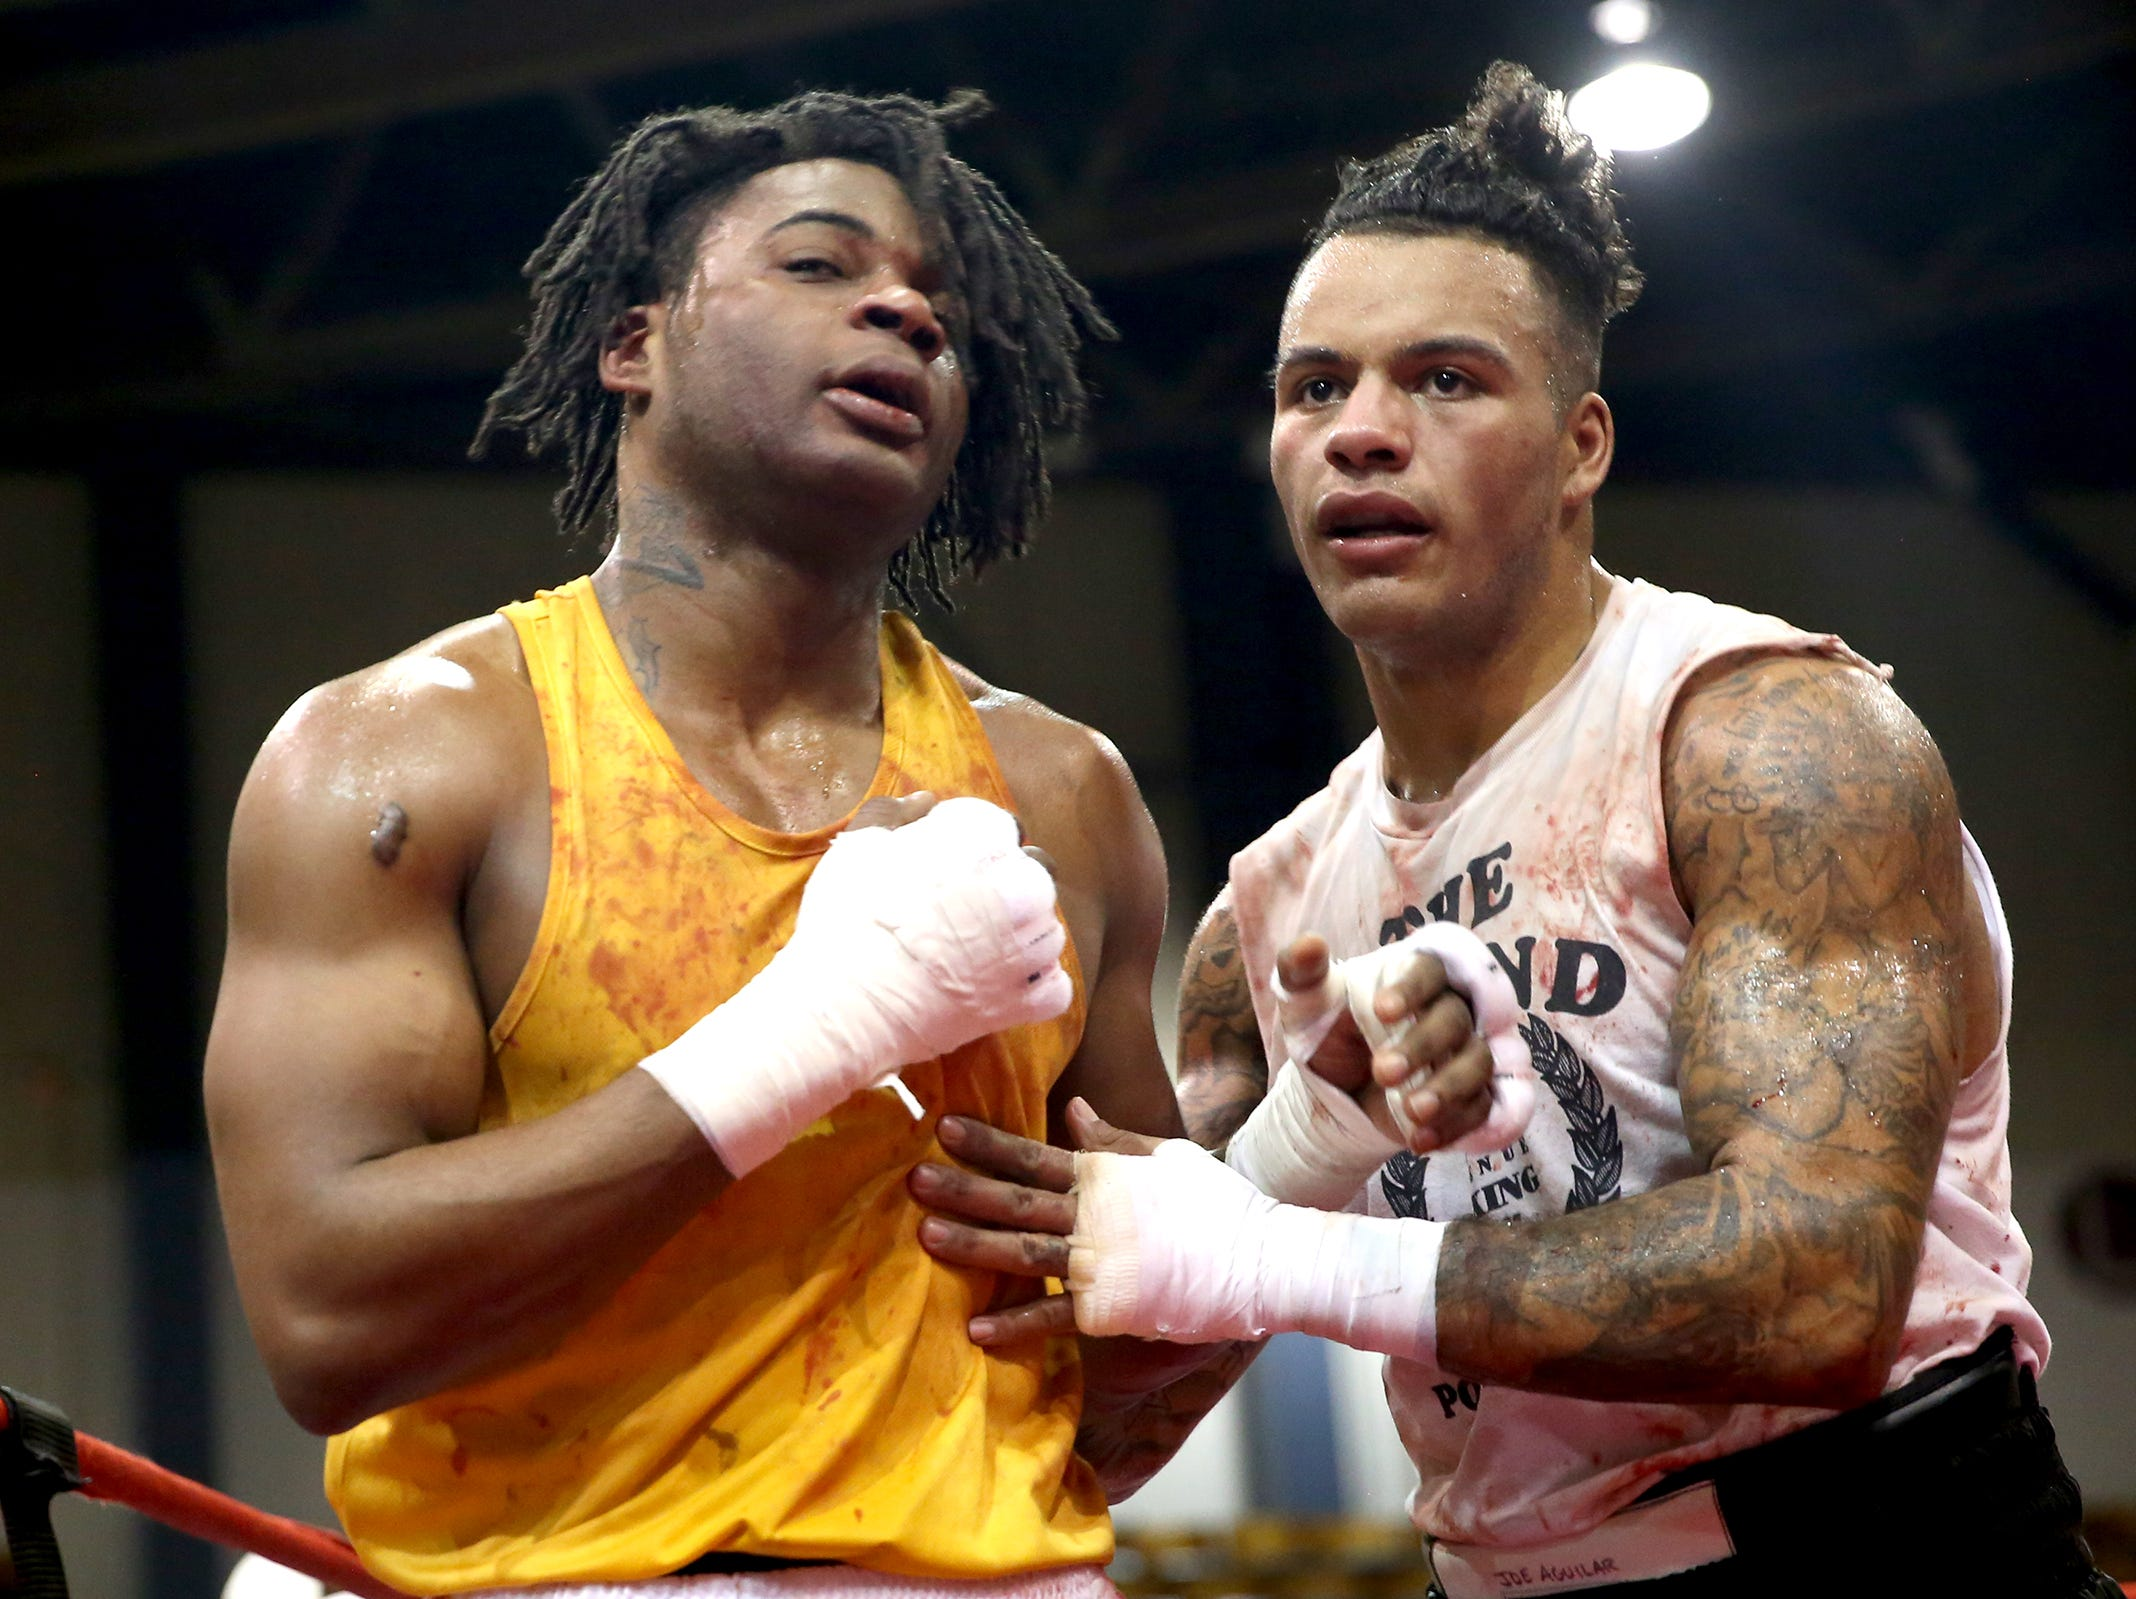 Joseph Aguilar (right) of Happy Valley and Terance Oddie of Vancouver (left) at the Oregon Golden Gloves championship matches at the Salem Armory on Saturday, Feb. 2, 2019. Aguilar was victorious in the match and received an award as best fighter of the tournament.